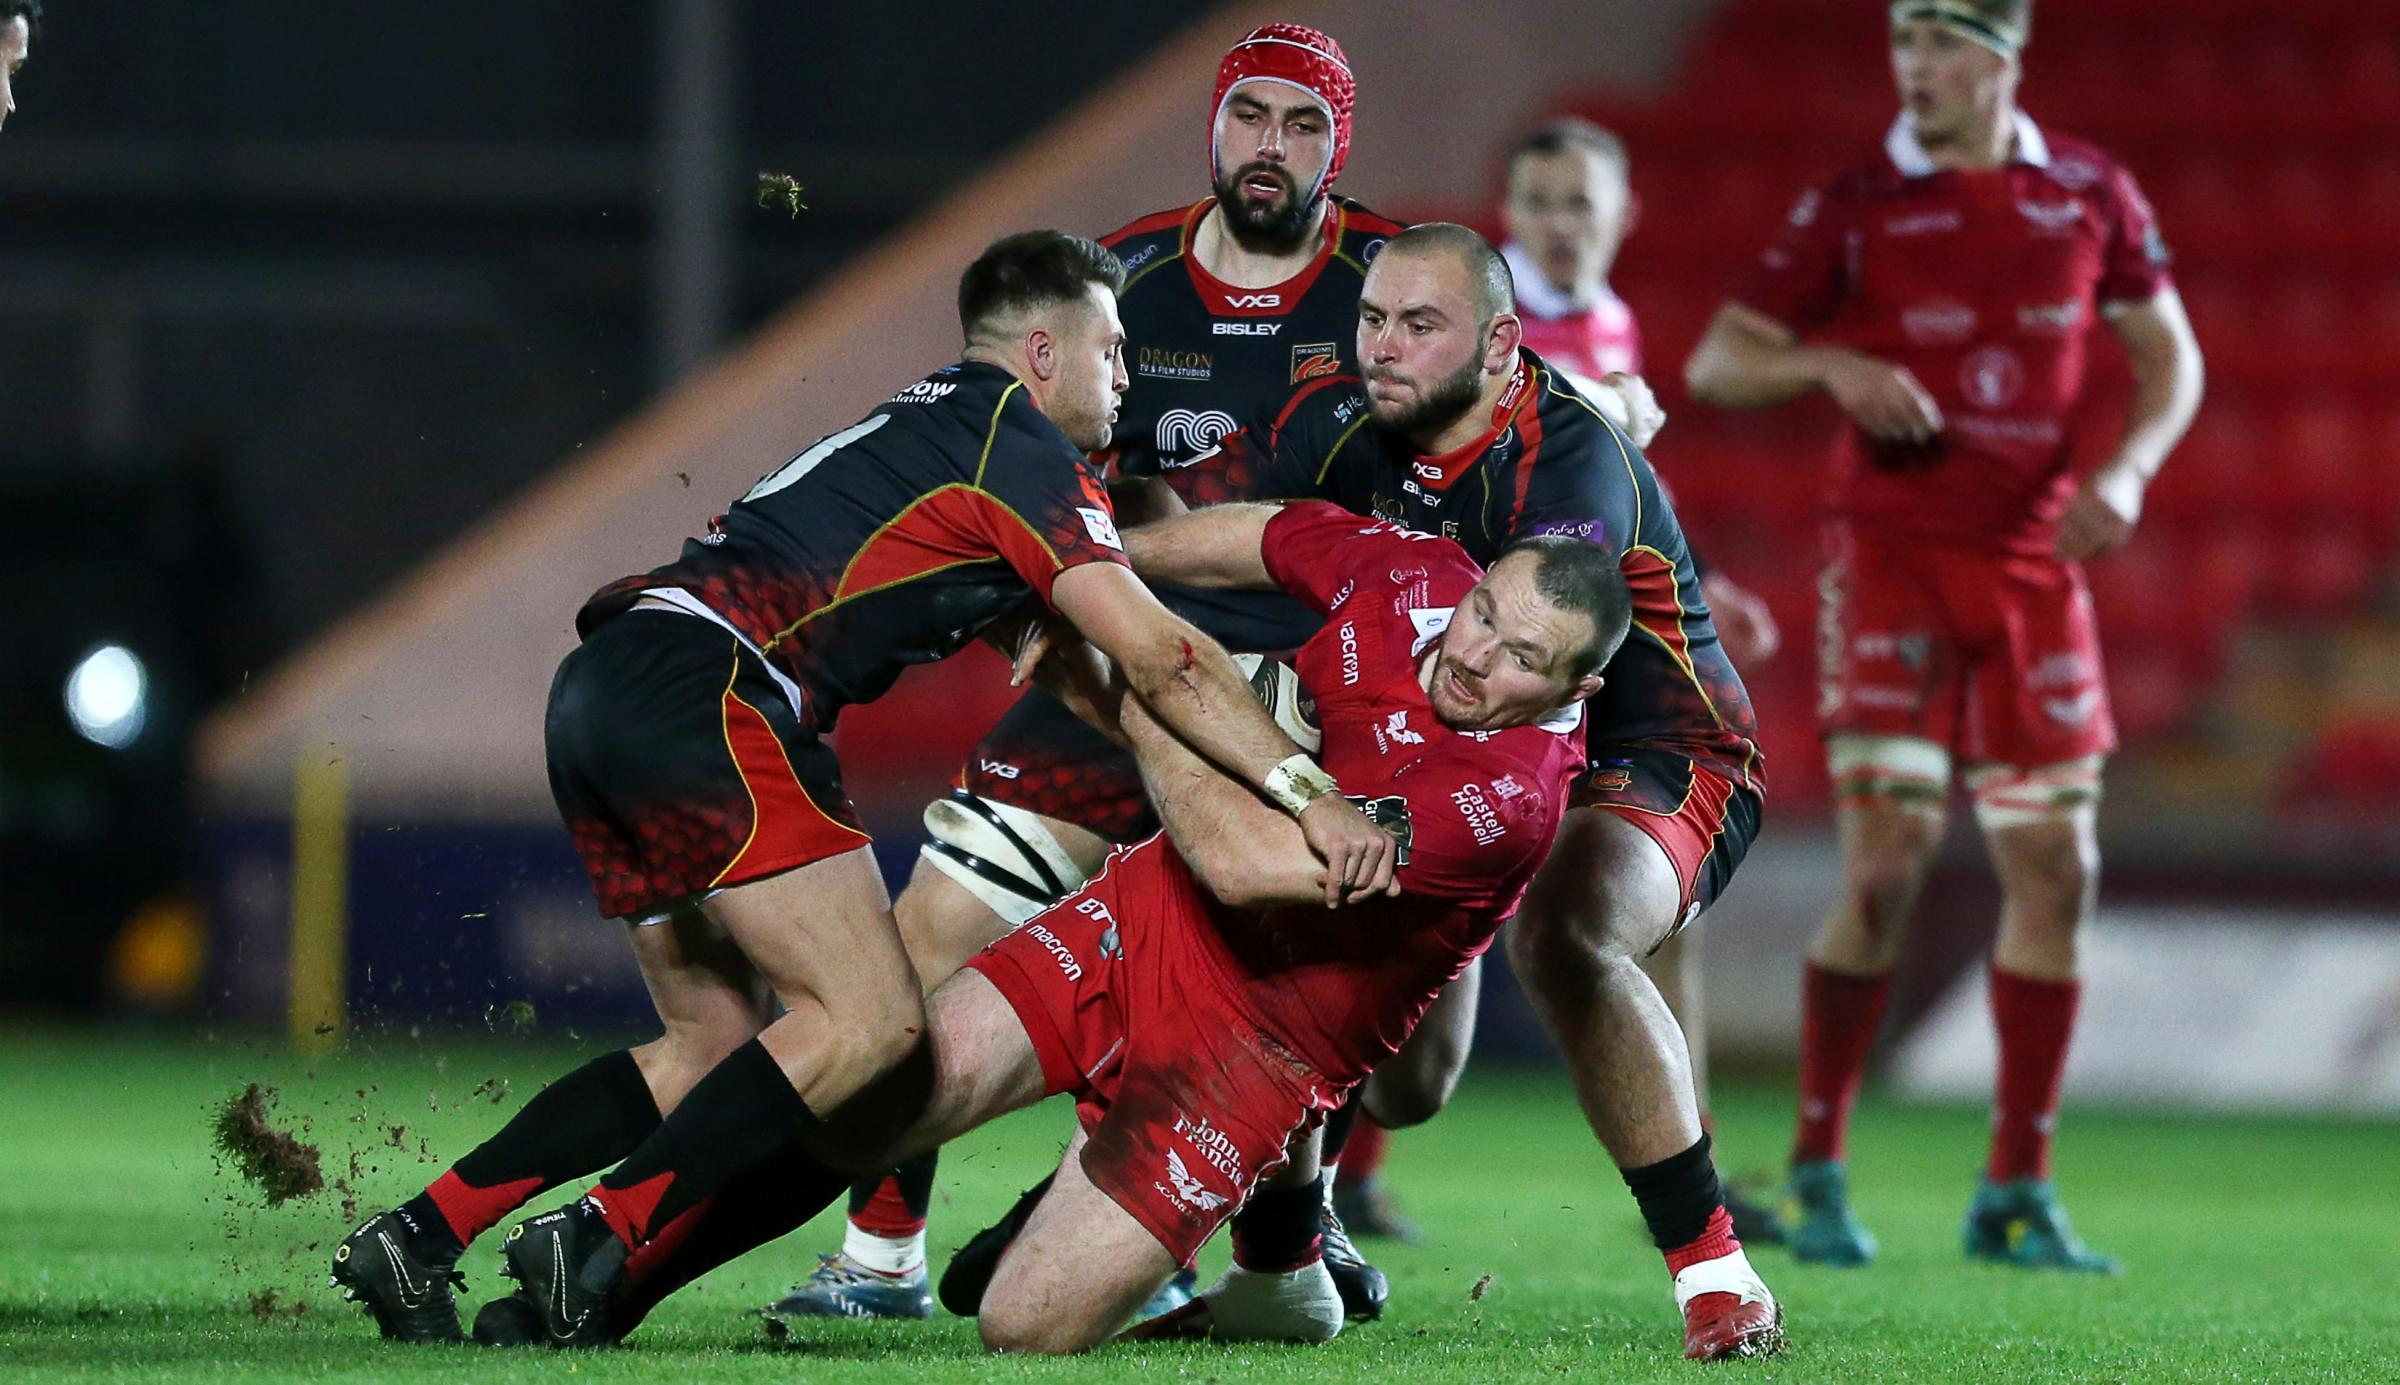 05.01.19 - Scarlets v Dragons - Guinness PRO14 - Ken Owens of Scarlets is tackled by Josh Lewis and Gerard Ellis of Dragons.